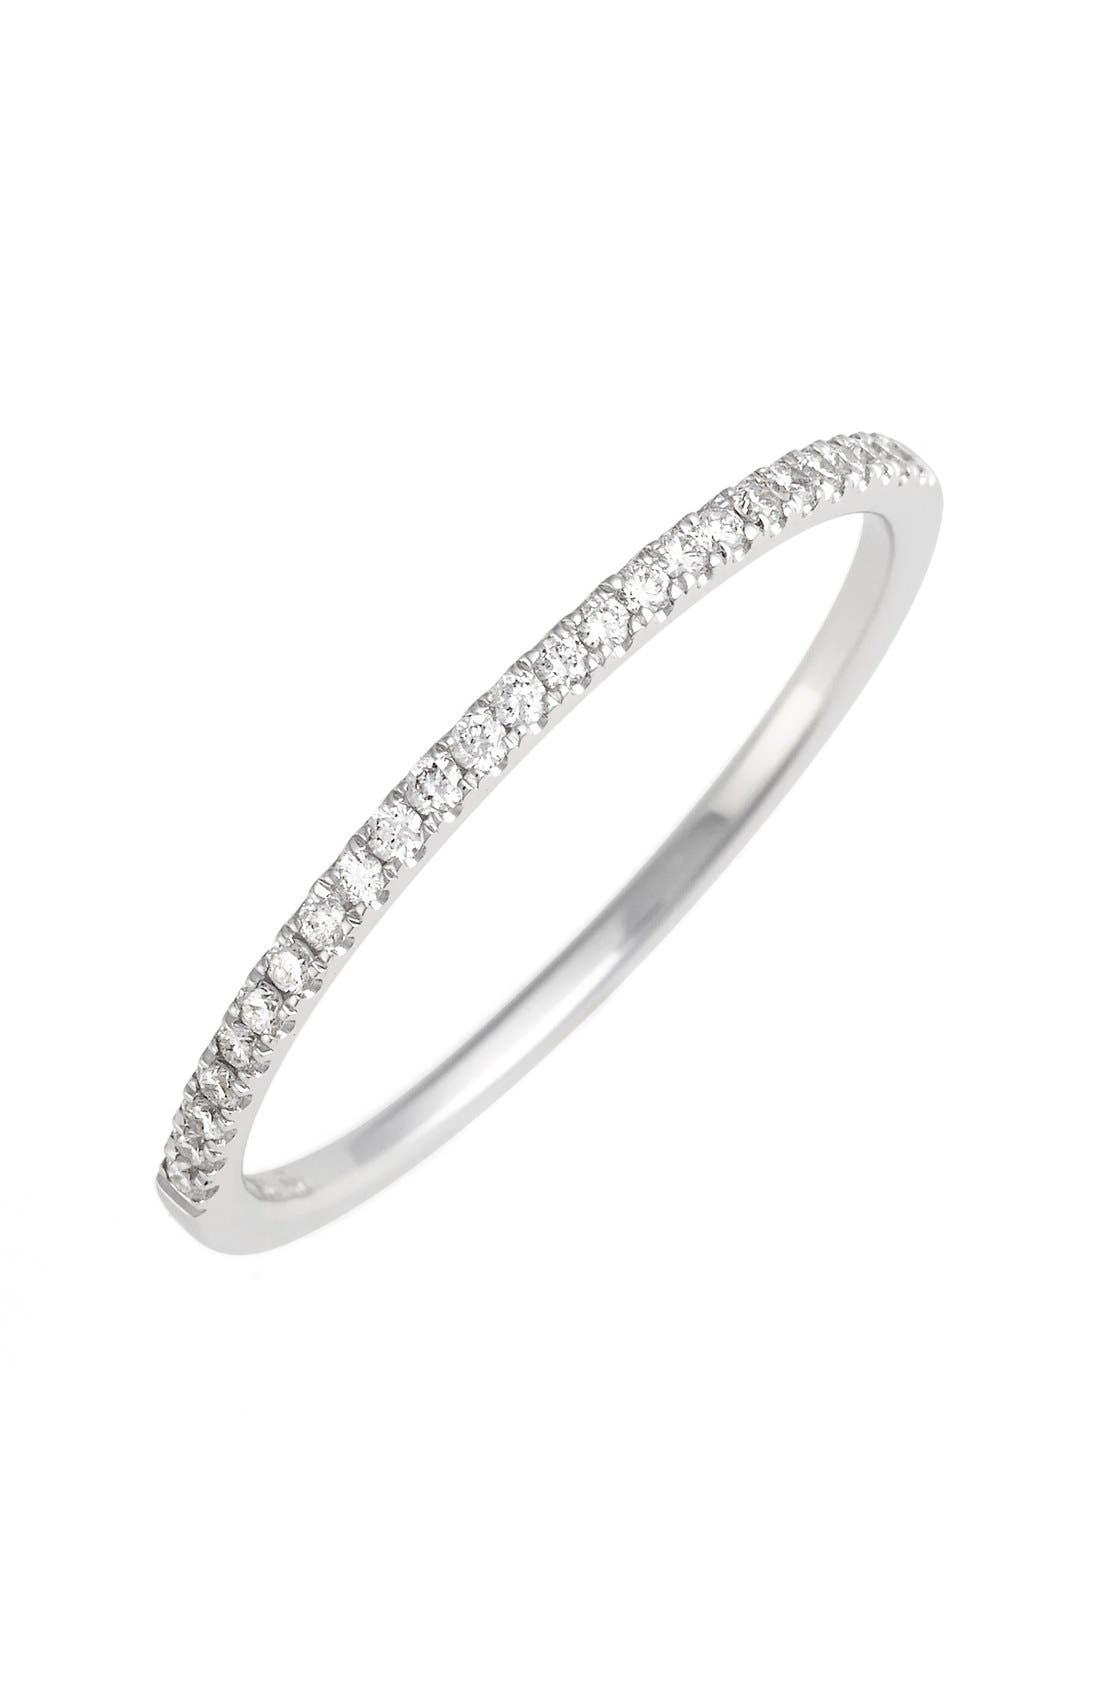 Alternate Image 1 Selected - Bony Levy 'Stackable' Straight Diamond Band Ring (Nordstrom Exclusive)